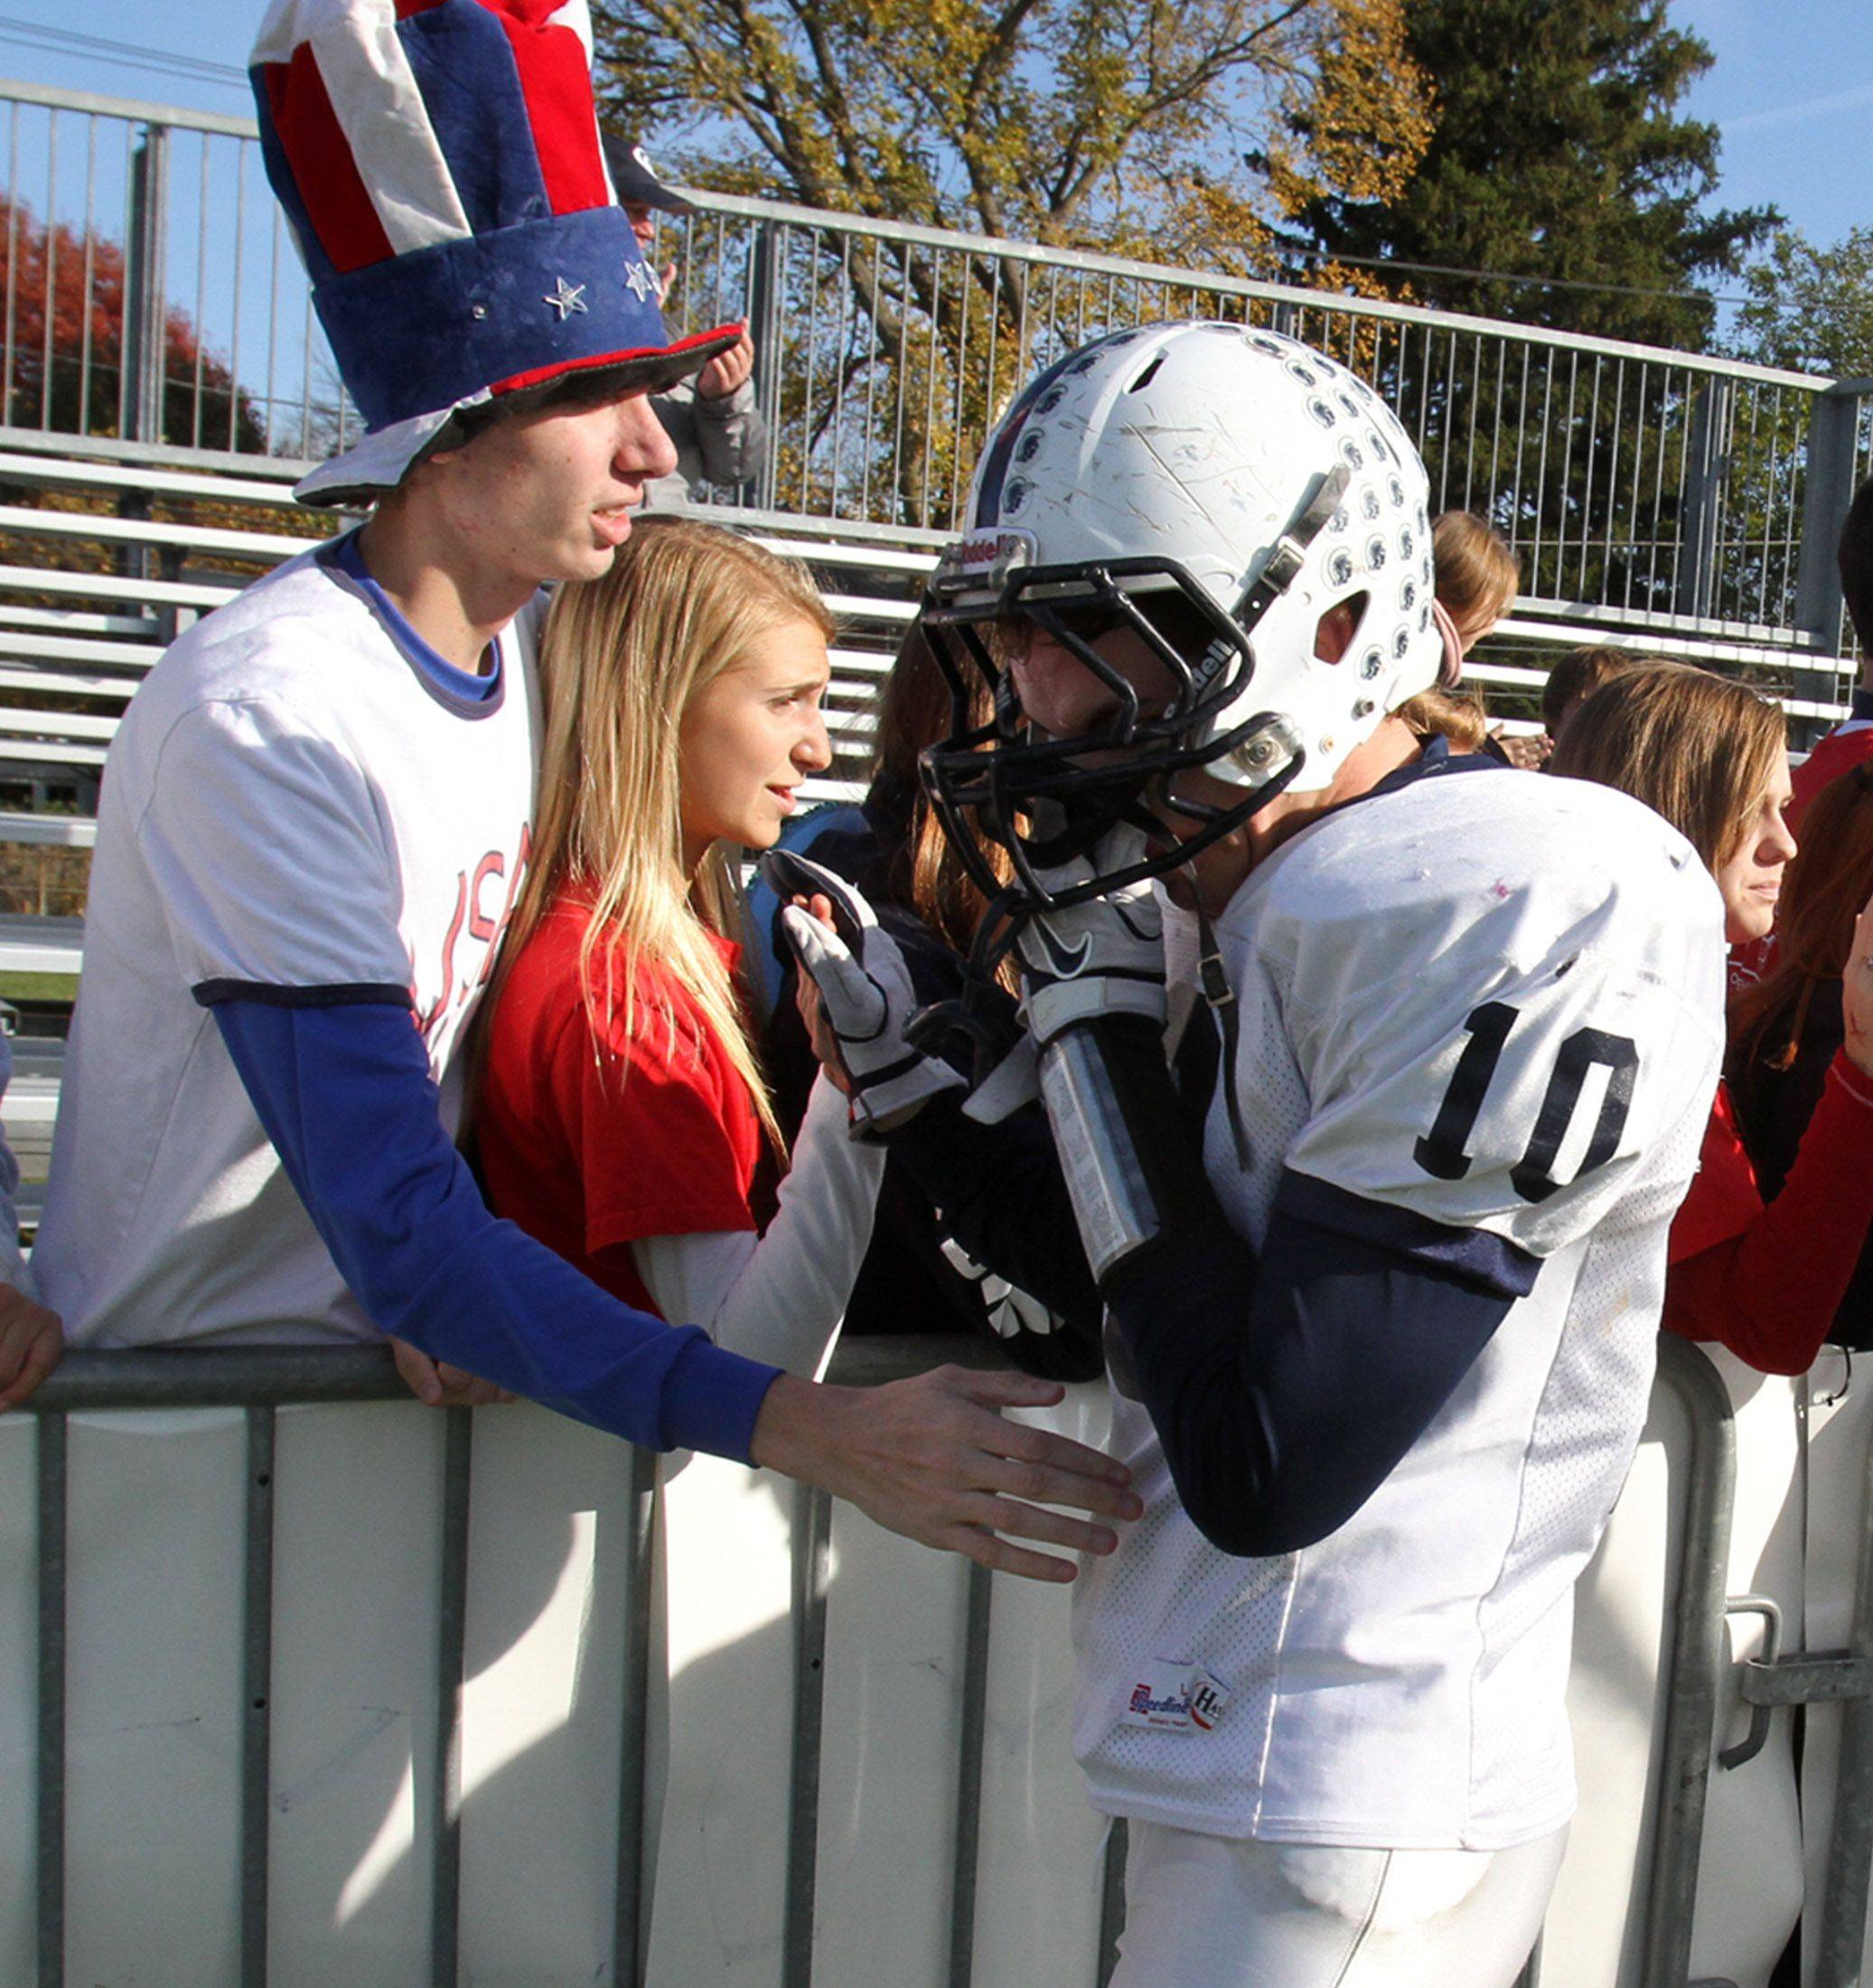 Cary-Grove linebacker Patrick Snell gets a hand from fans after loss to Nazareth Academy on Saturday, November 5th.